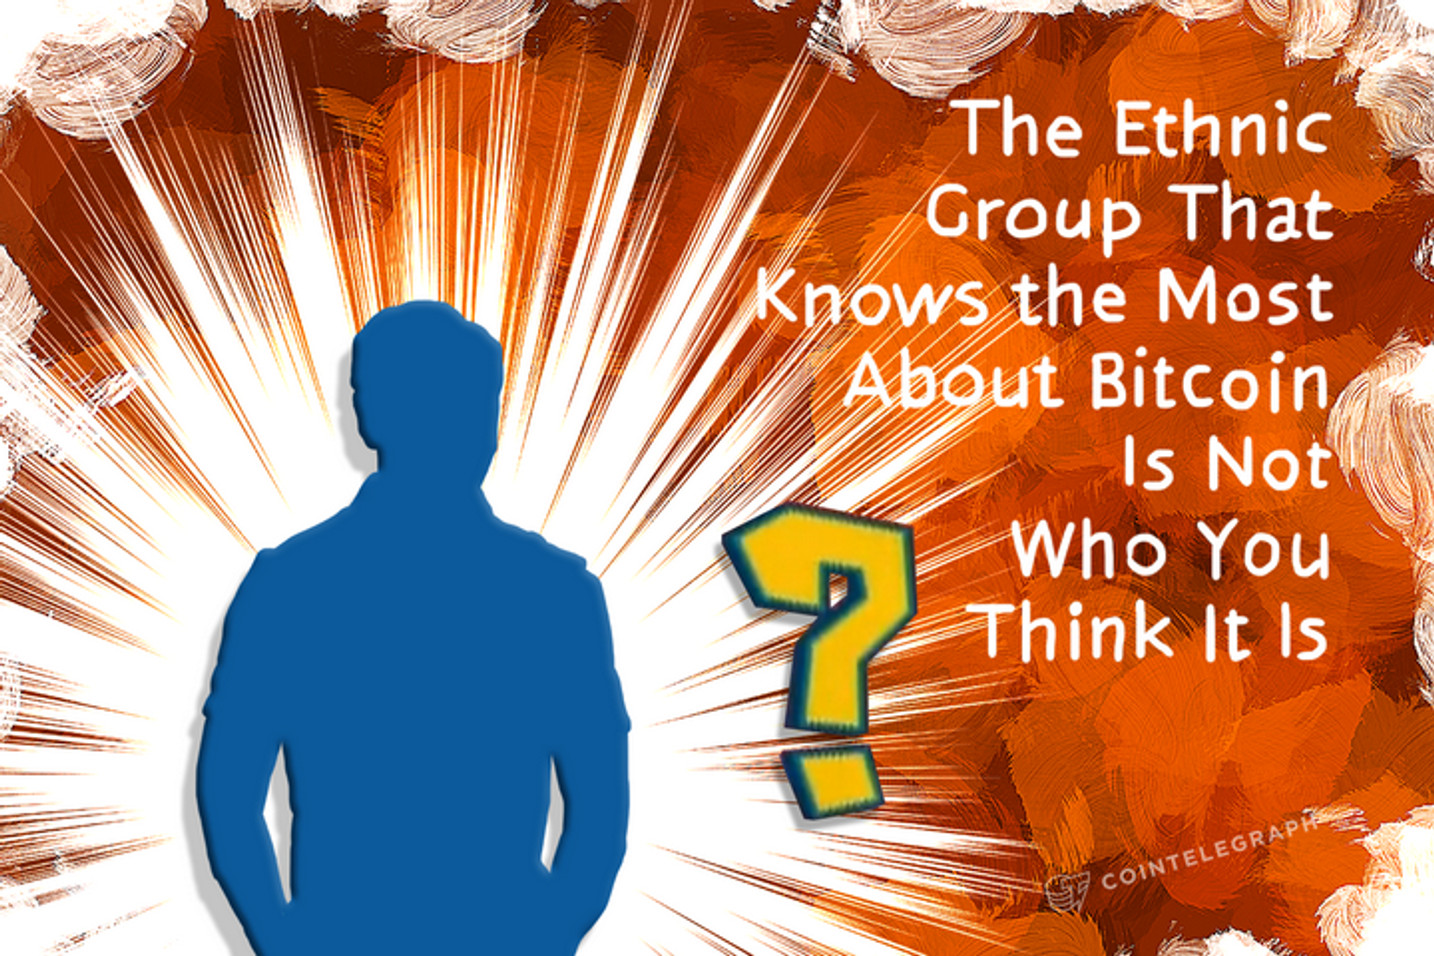 The Ethnic Group That Knows the Most About Bitcoin Is Not Who You Think It Is